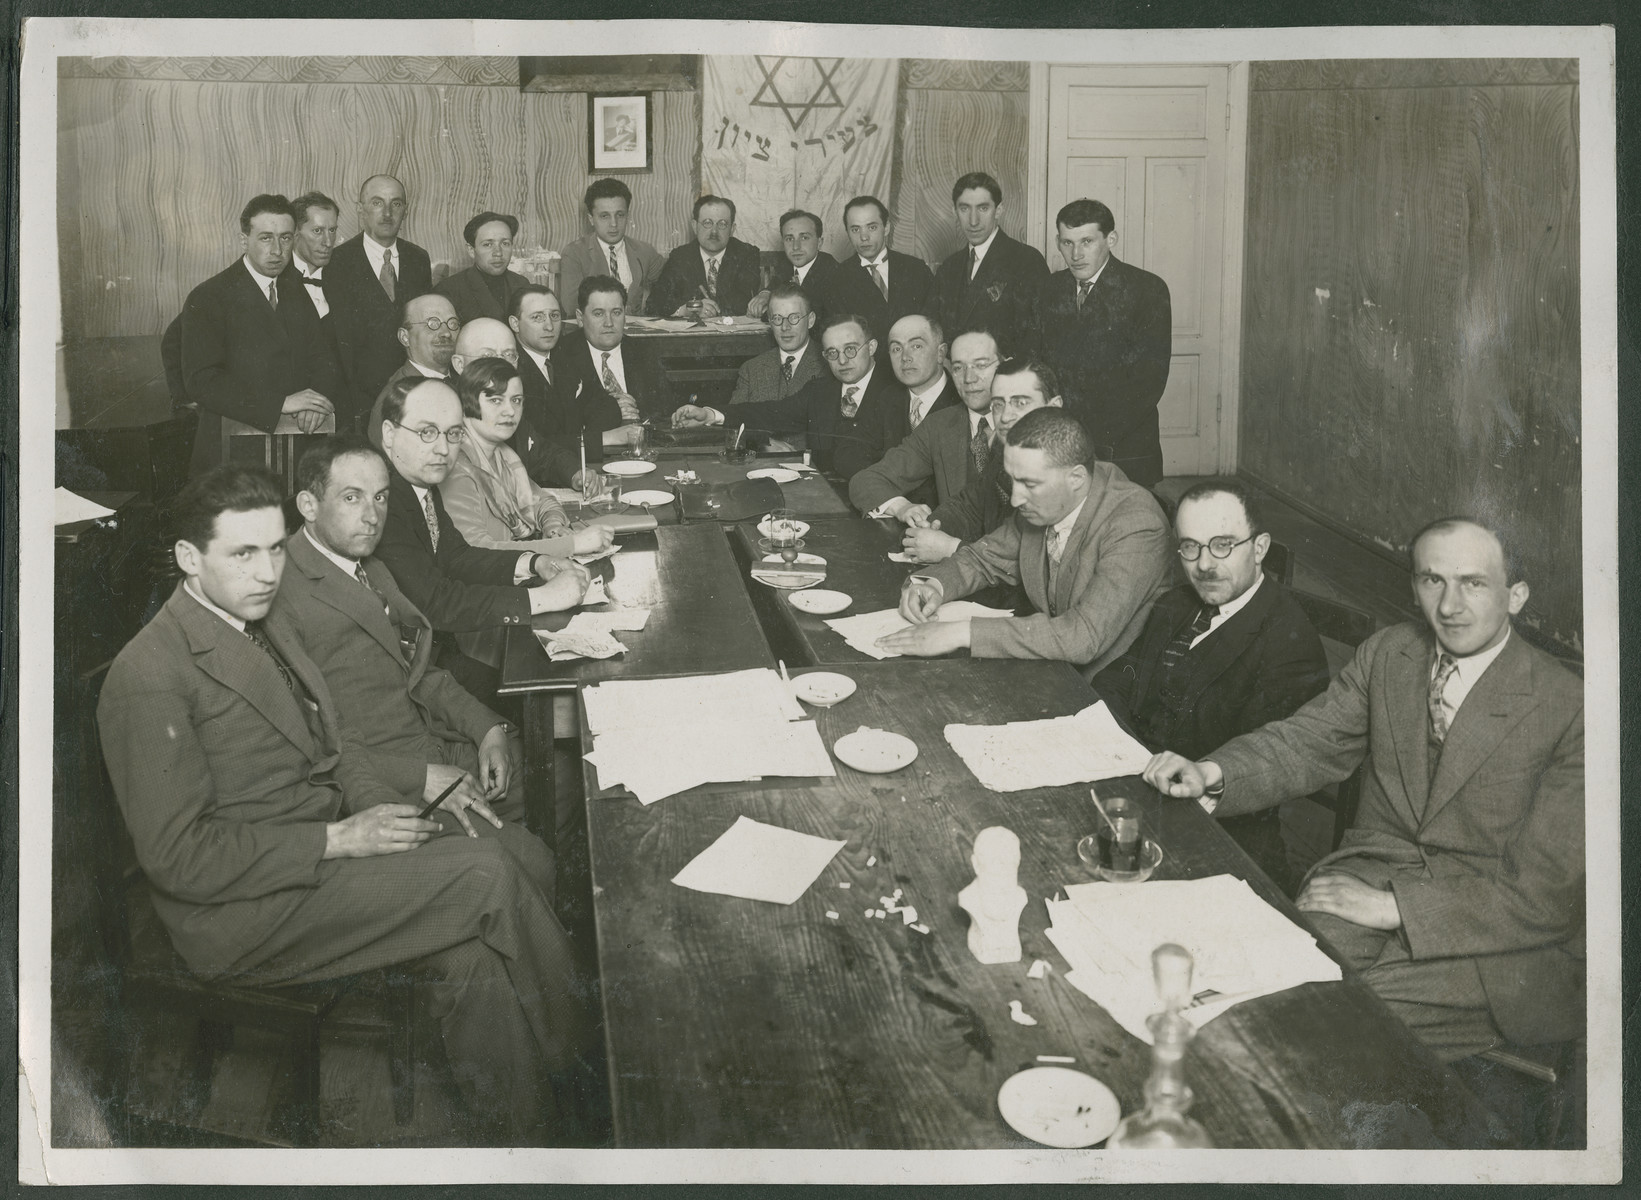 Meeting of a prewar Zionist group in either Lithuania or Latvia.  Samuel gotz is at the lower table at the top, center left.